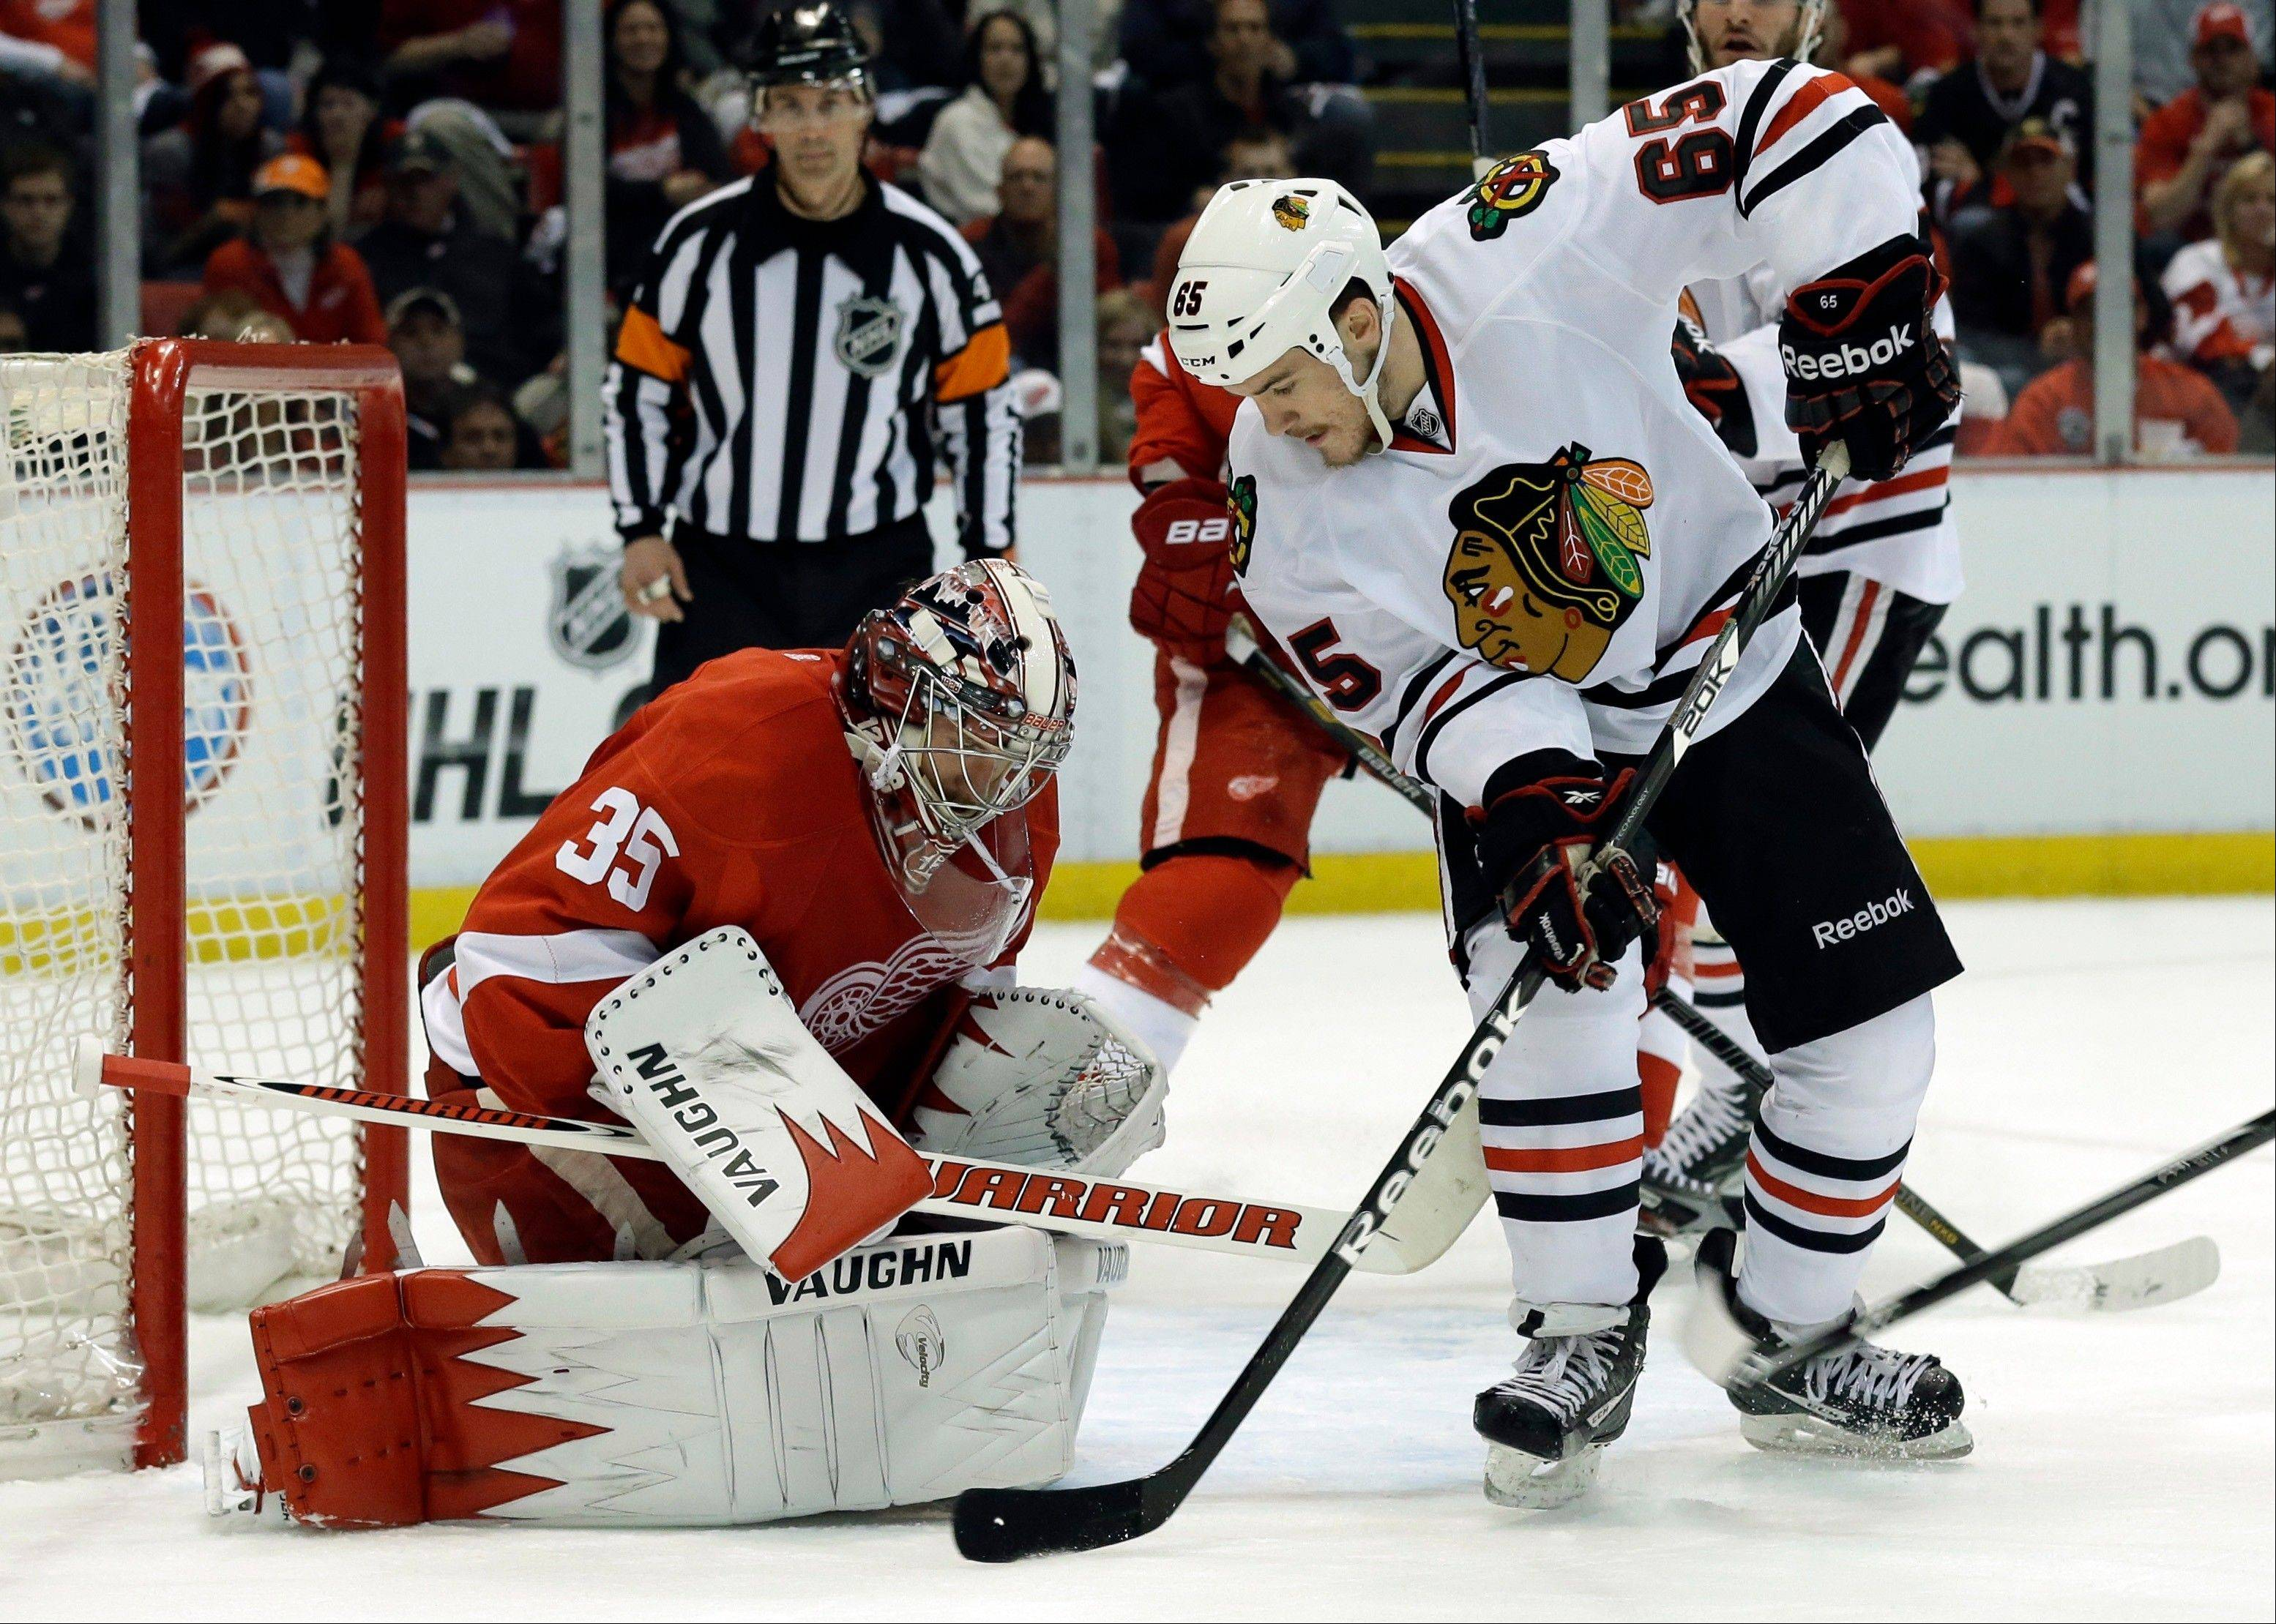 Detroit Red Wings goalie Jimmy Howard (35) stops a shot by Chicago Blackhawks center Andrew Shaw (65) during the first period.